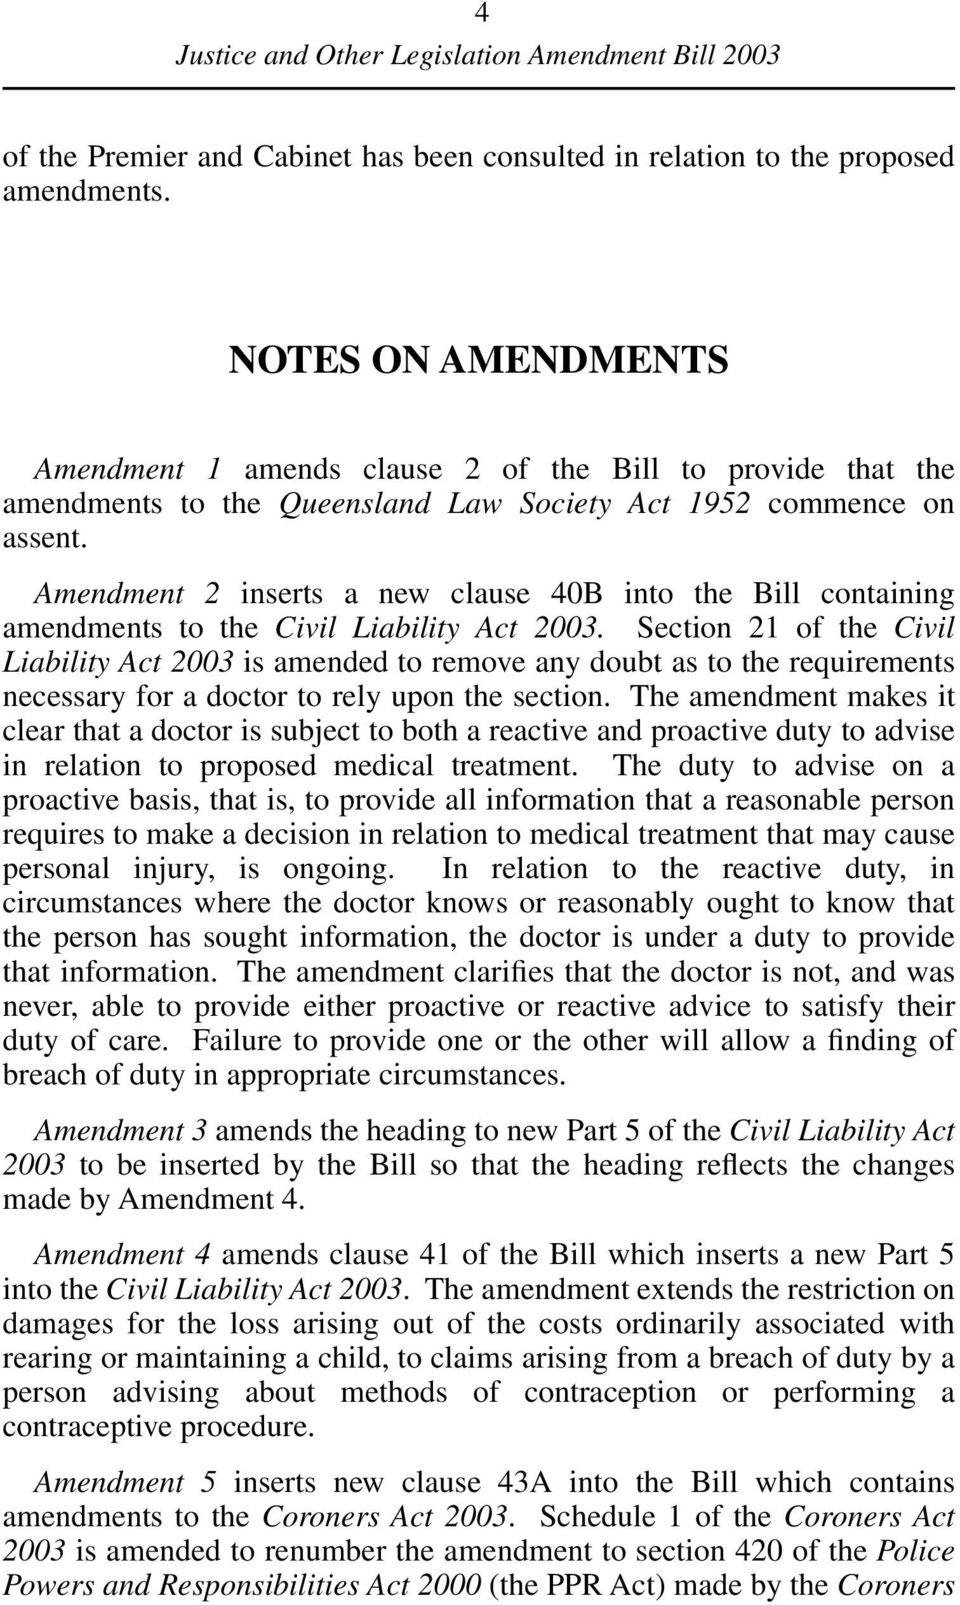 Amendment 2 inserts a new clause 40B into the Bill containing amendments to the Civil Liability Act 2003.